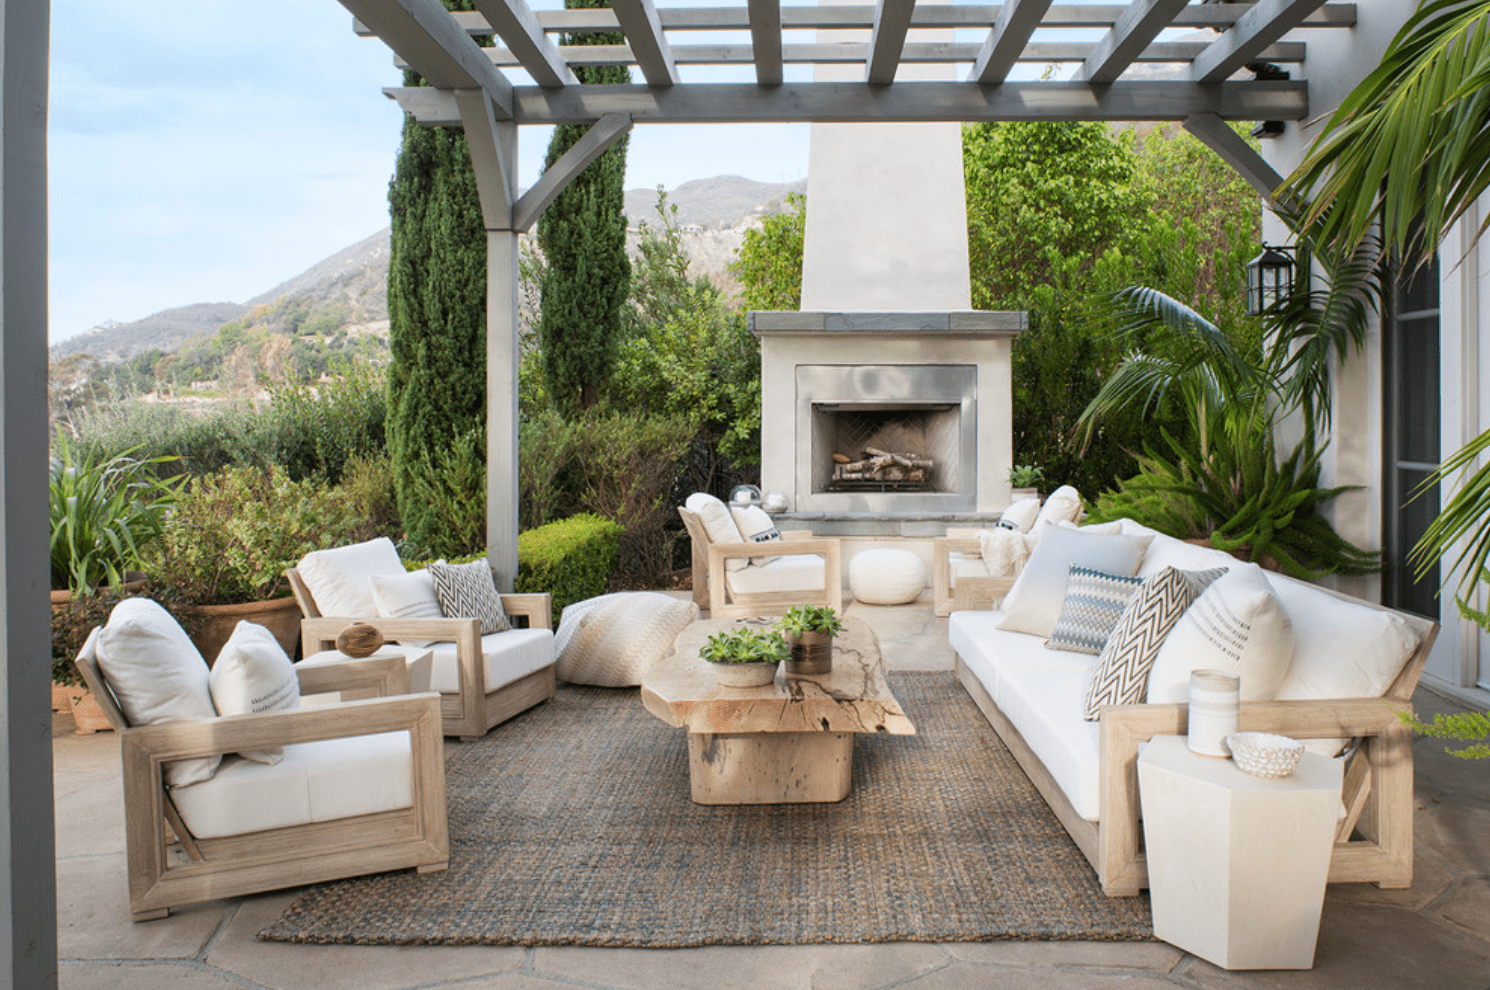 An outdoor fireplace, placed near lots of cozy outdoor seating, a wooden coffee table, and a rug